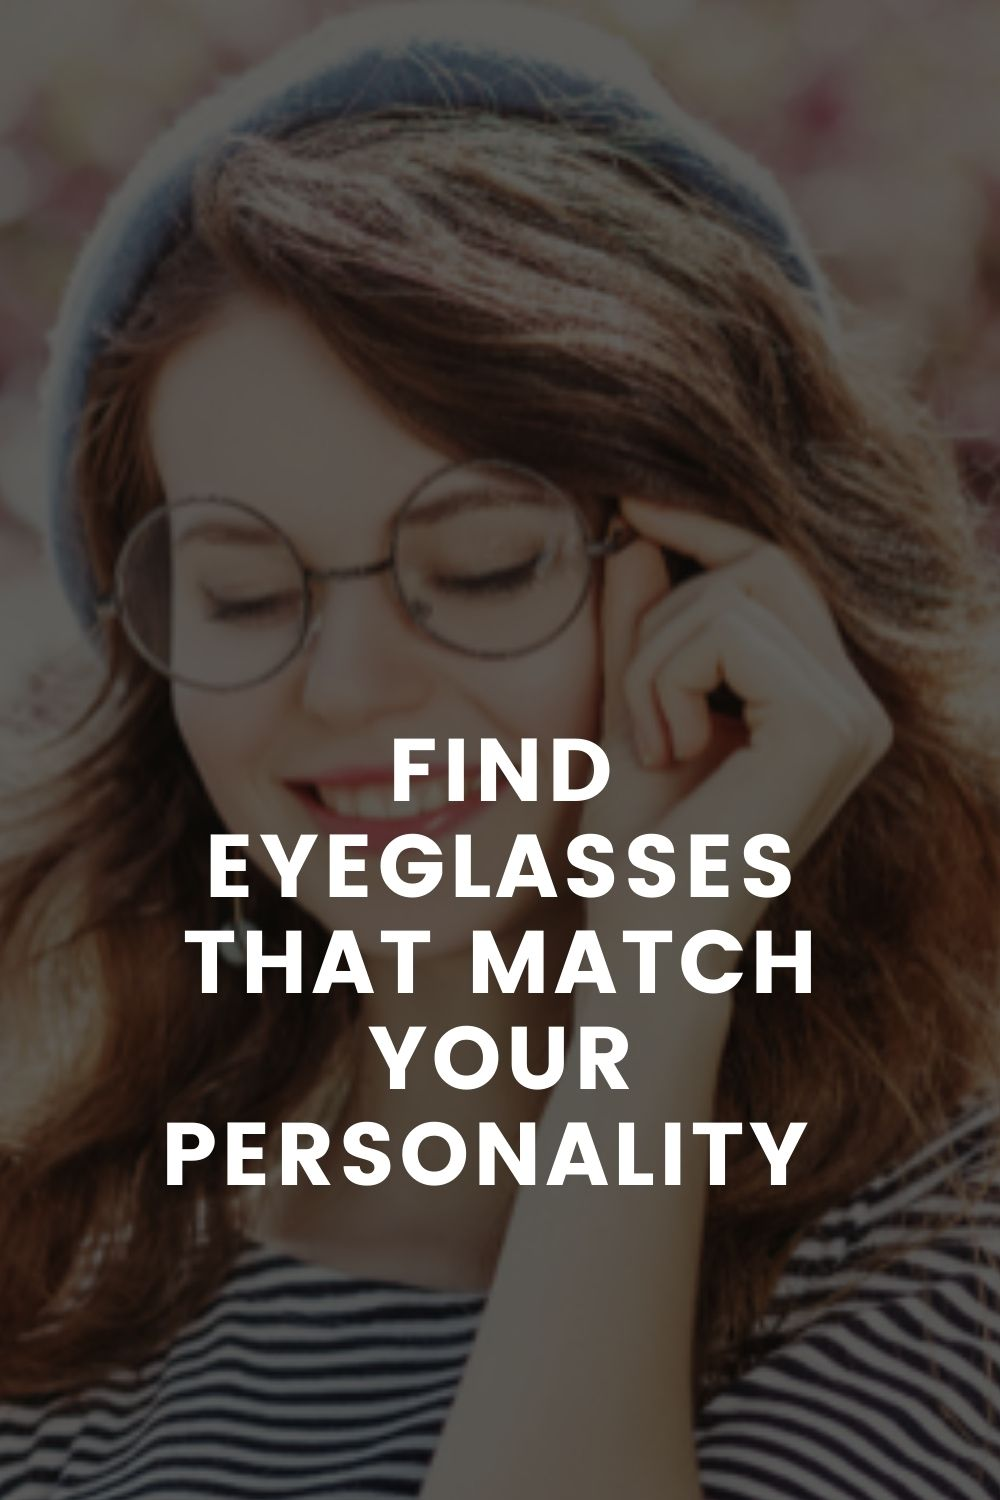 Find Eyeglasses That Match Your Personality